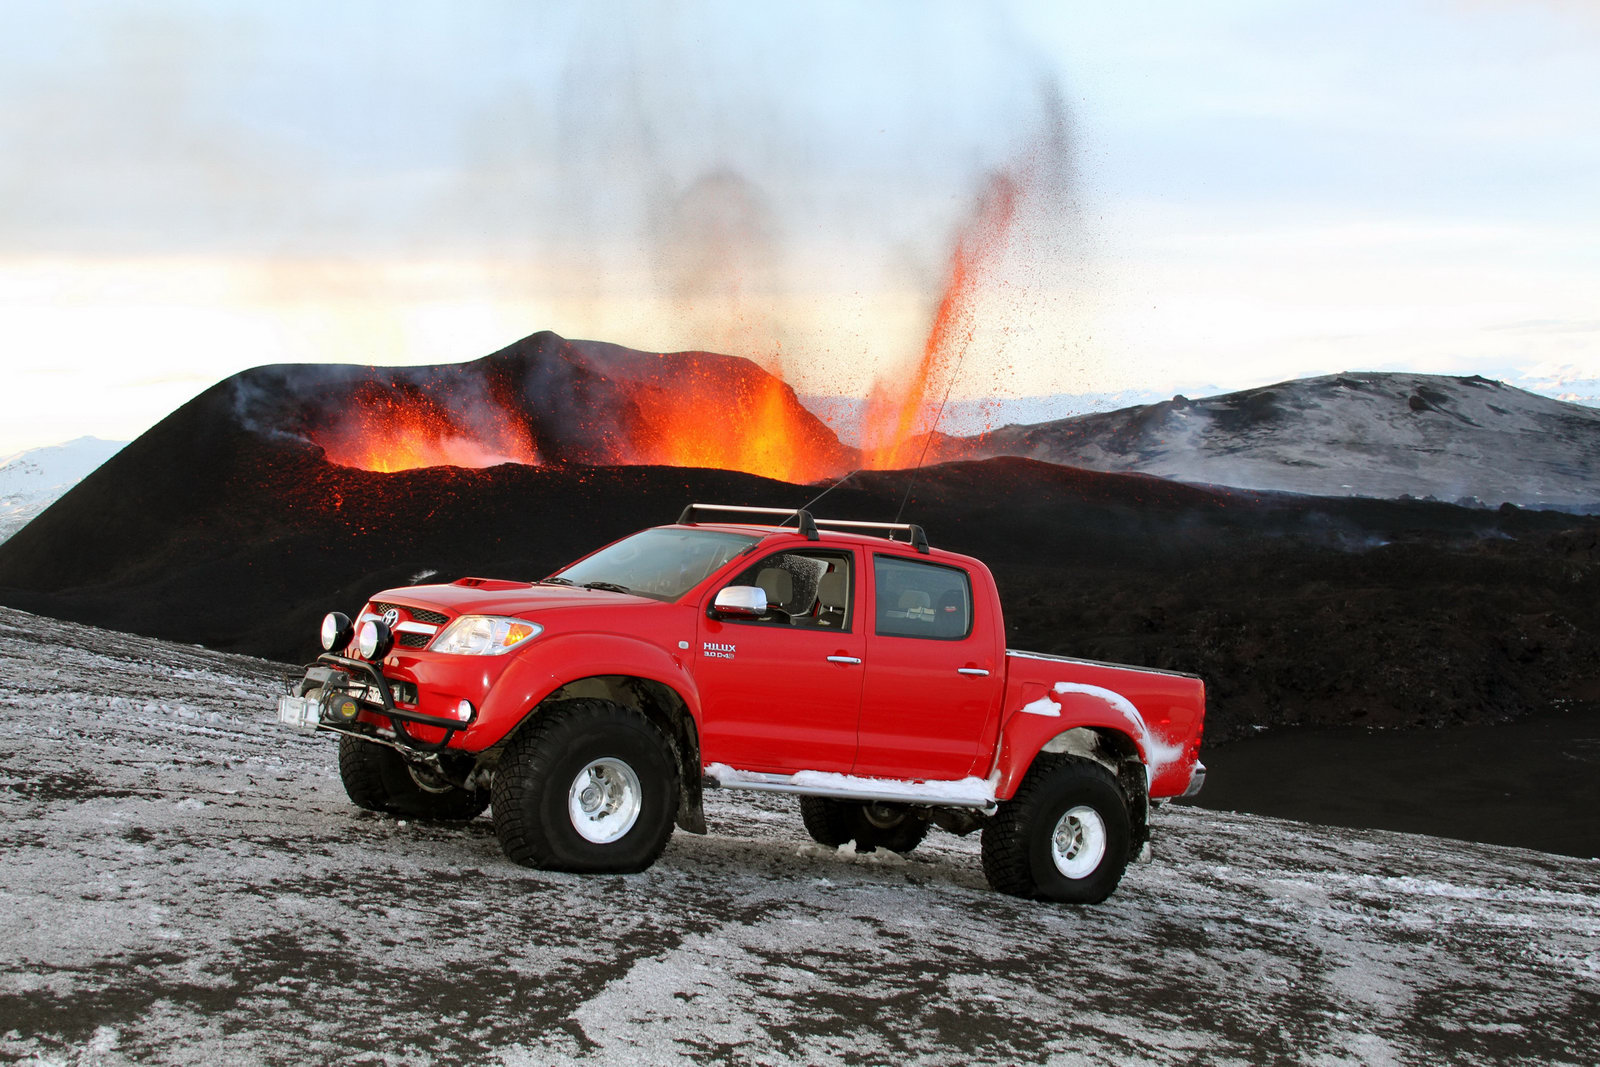 Toyota Hilux tackles Iceland Volcano Eyjafallajökull hours before the